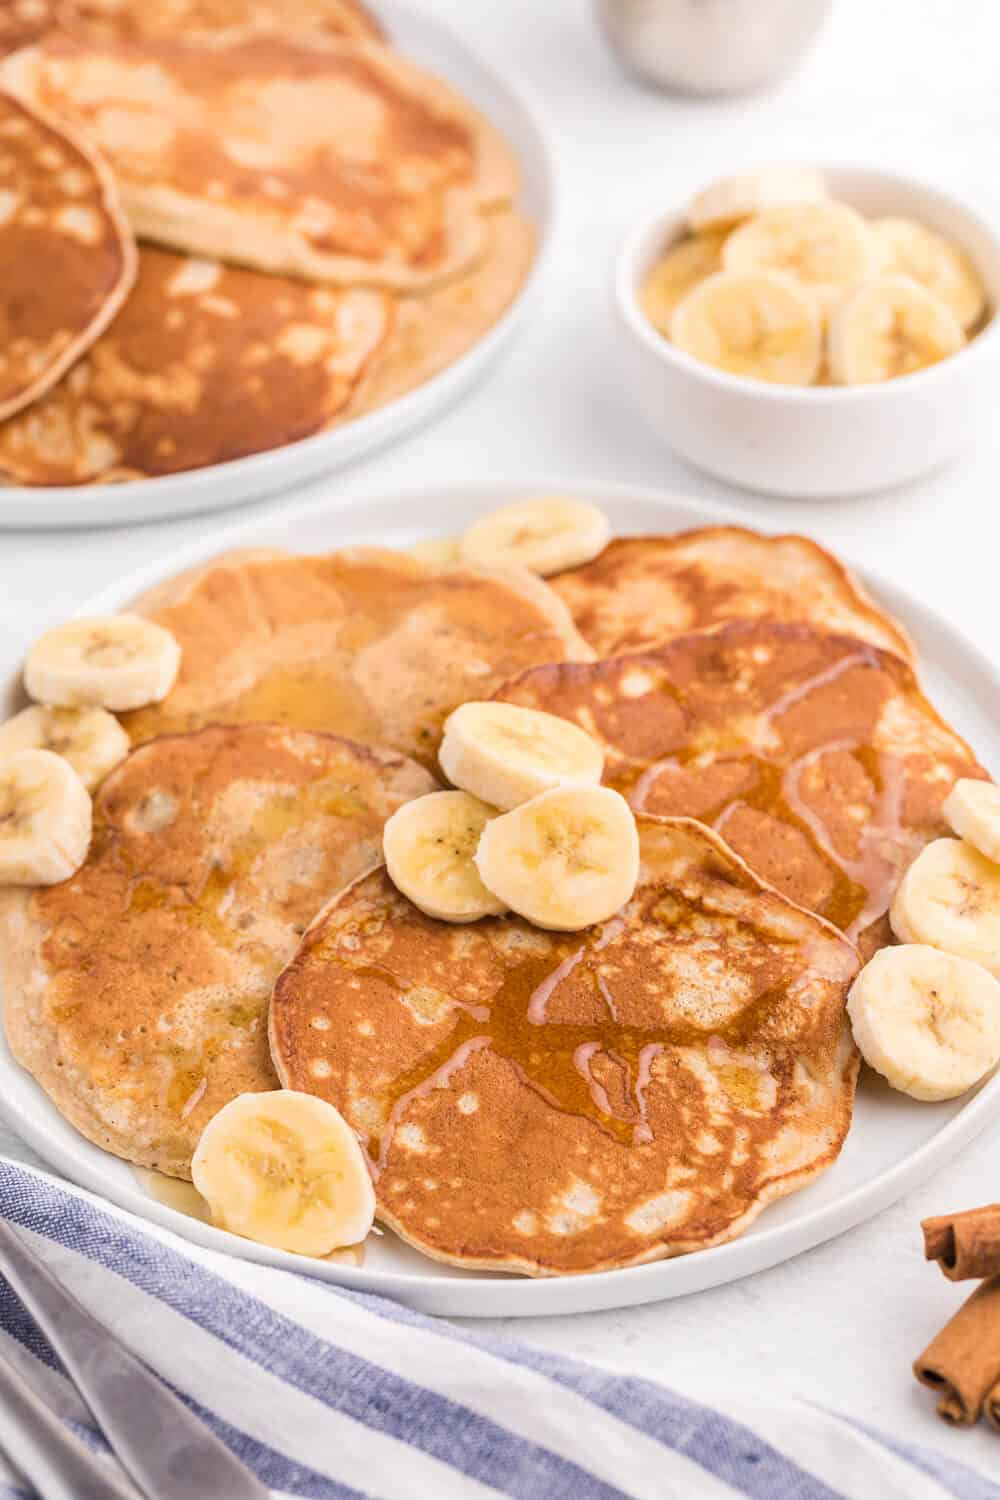 Cinnamon Banana Pancakes - Add some cinnamon and bananas to your next batch of pancakes. My family gobbled this delicious breakfast up in record time!